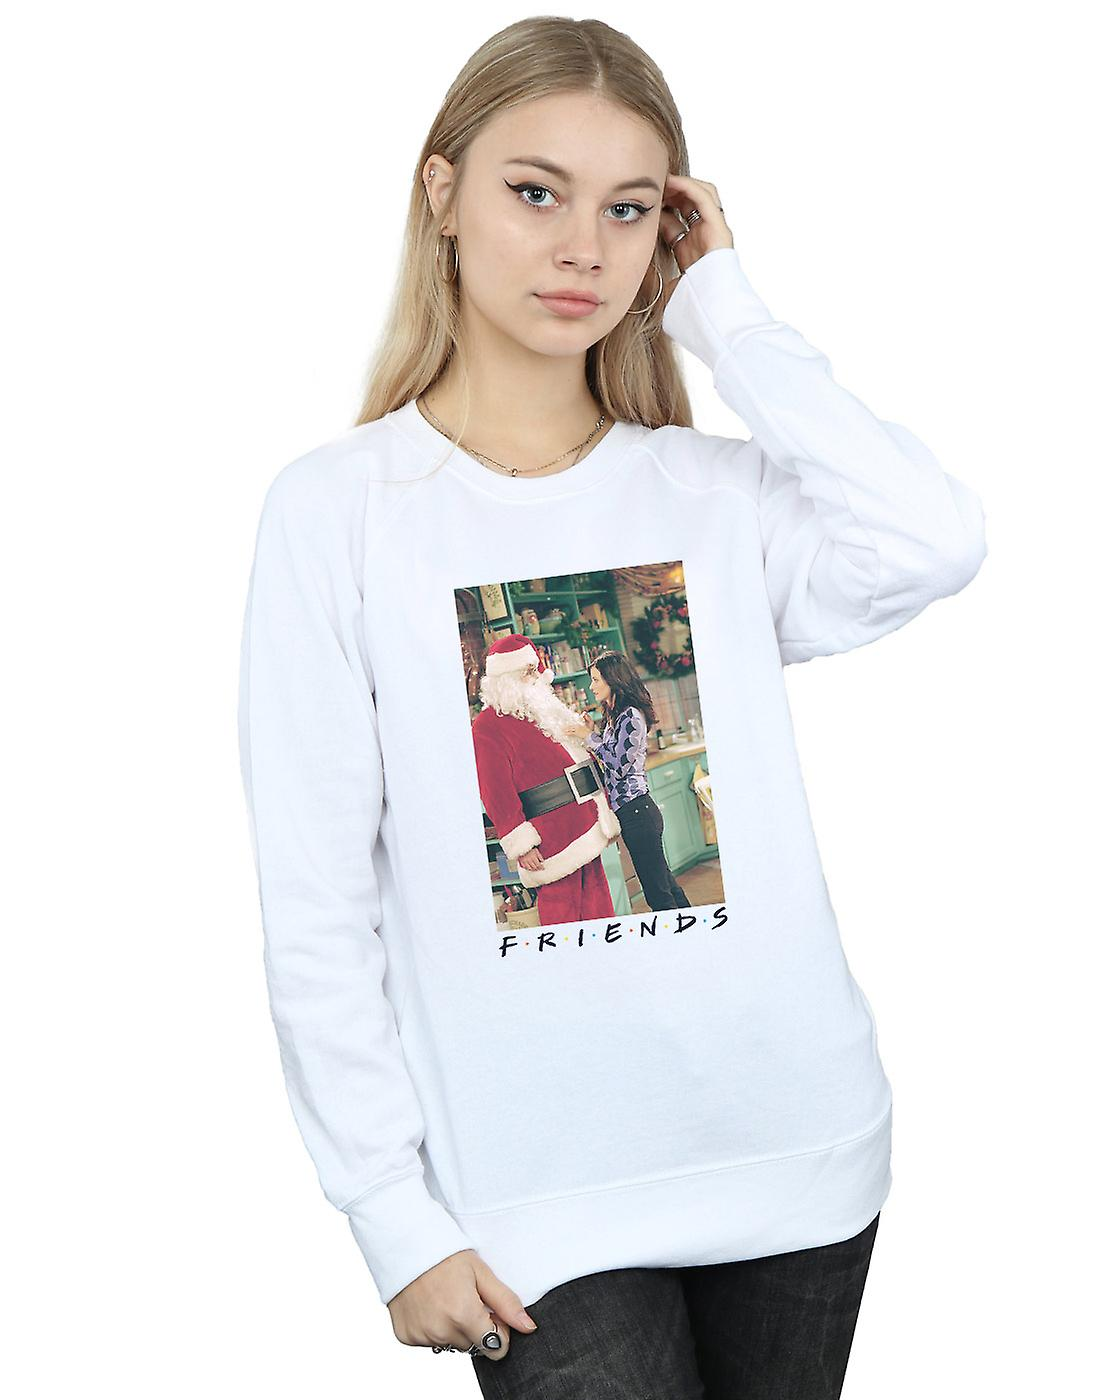 Friends Women's Chandler Claus Sweatshirt